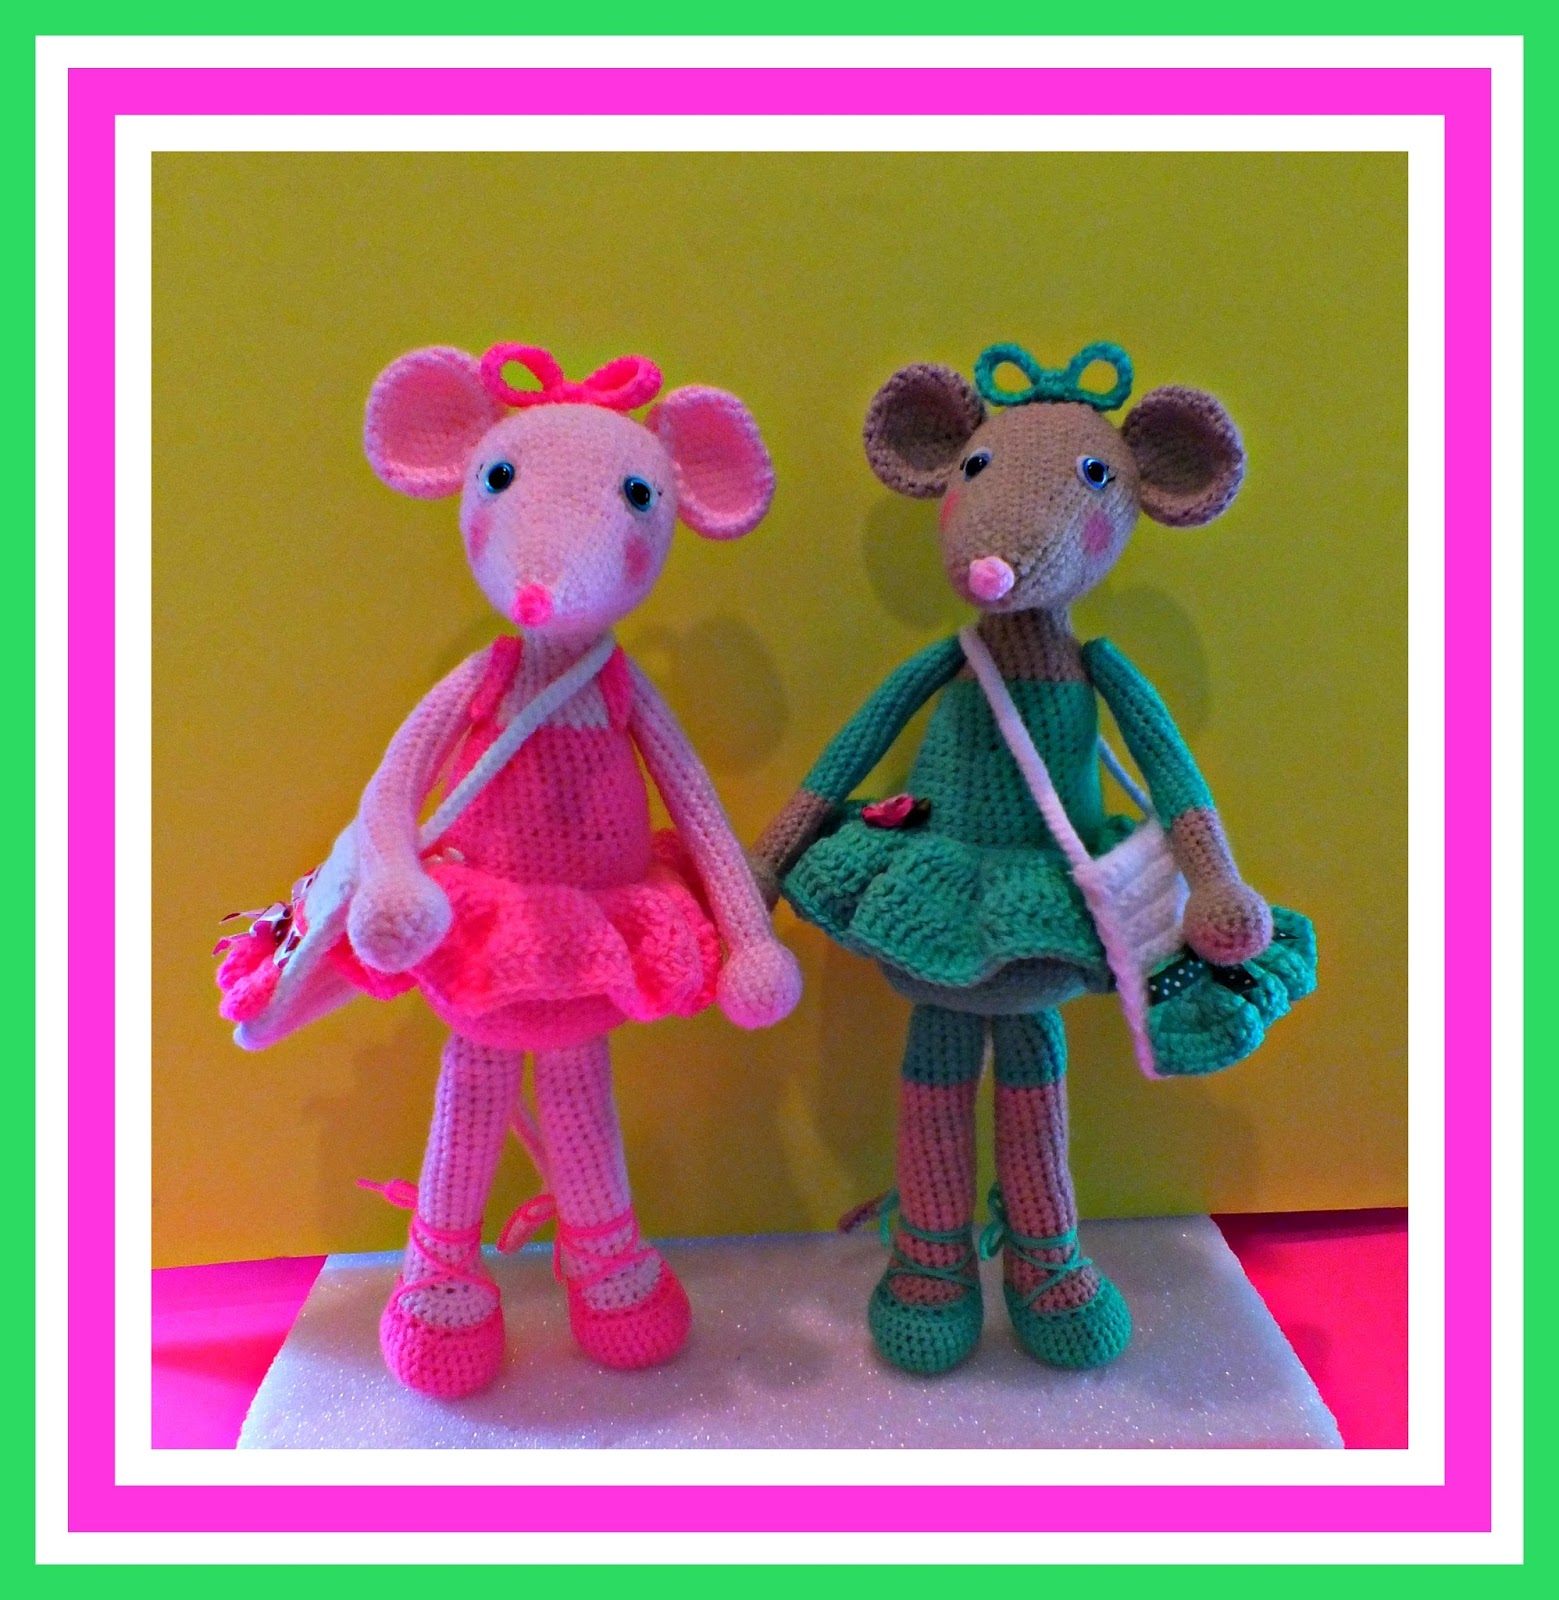 Stay at home and crochet - amigurumi patterns of week 5   lilleliis   1600x1559